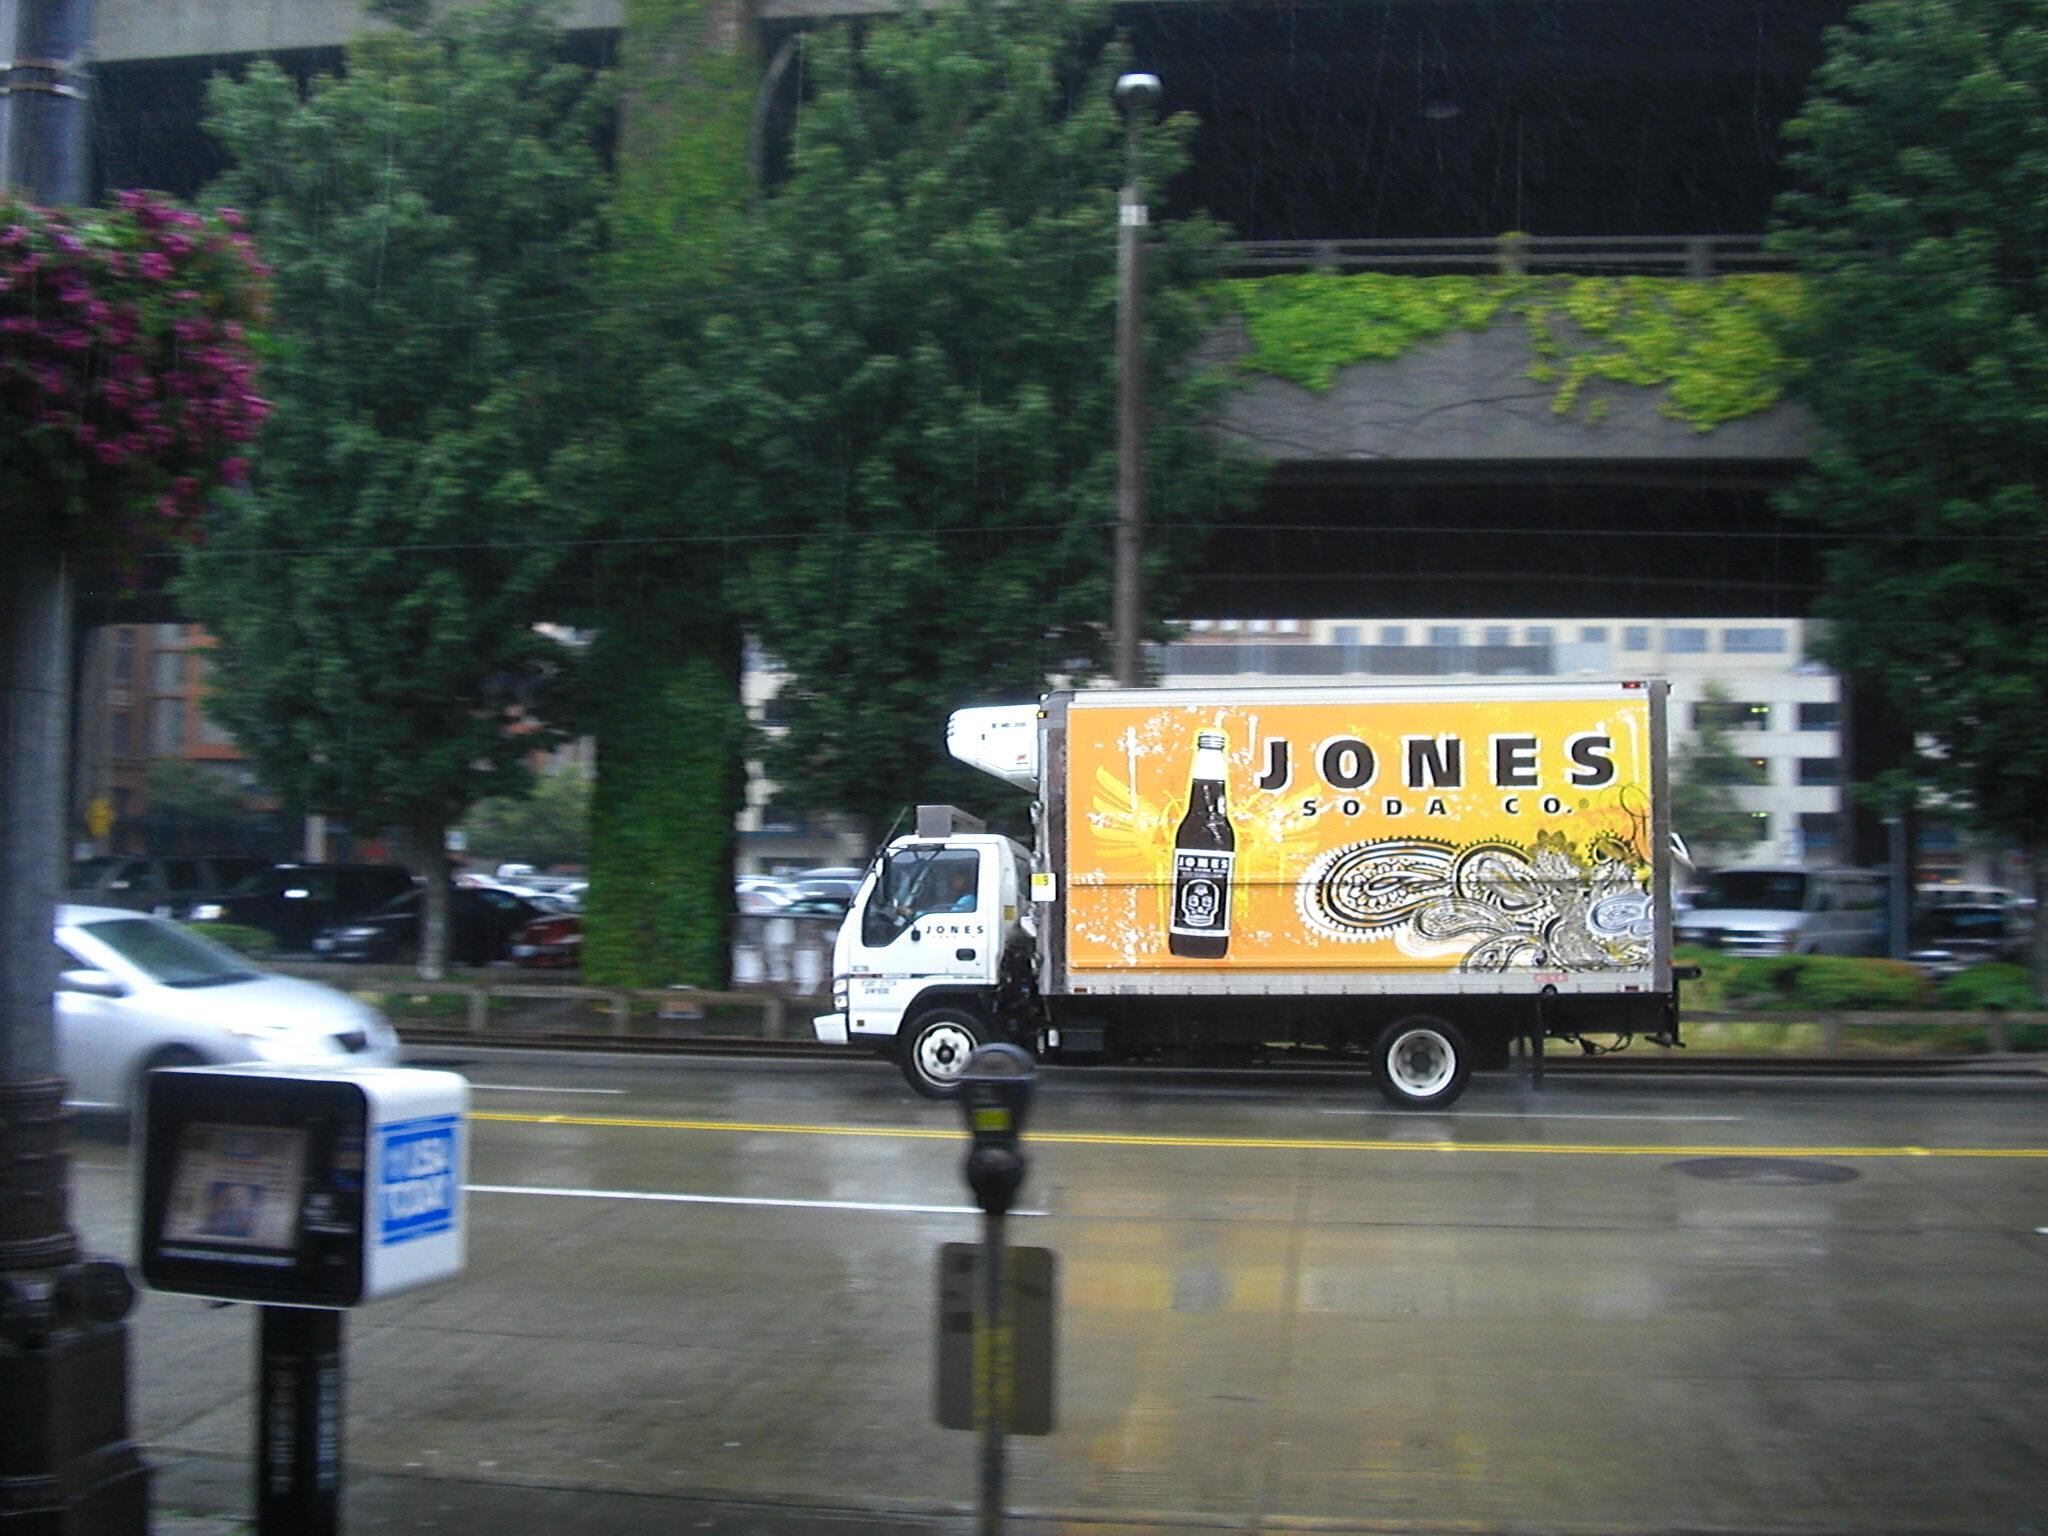 Jones Soda truck Alaskan Way Seattle